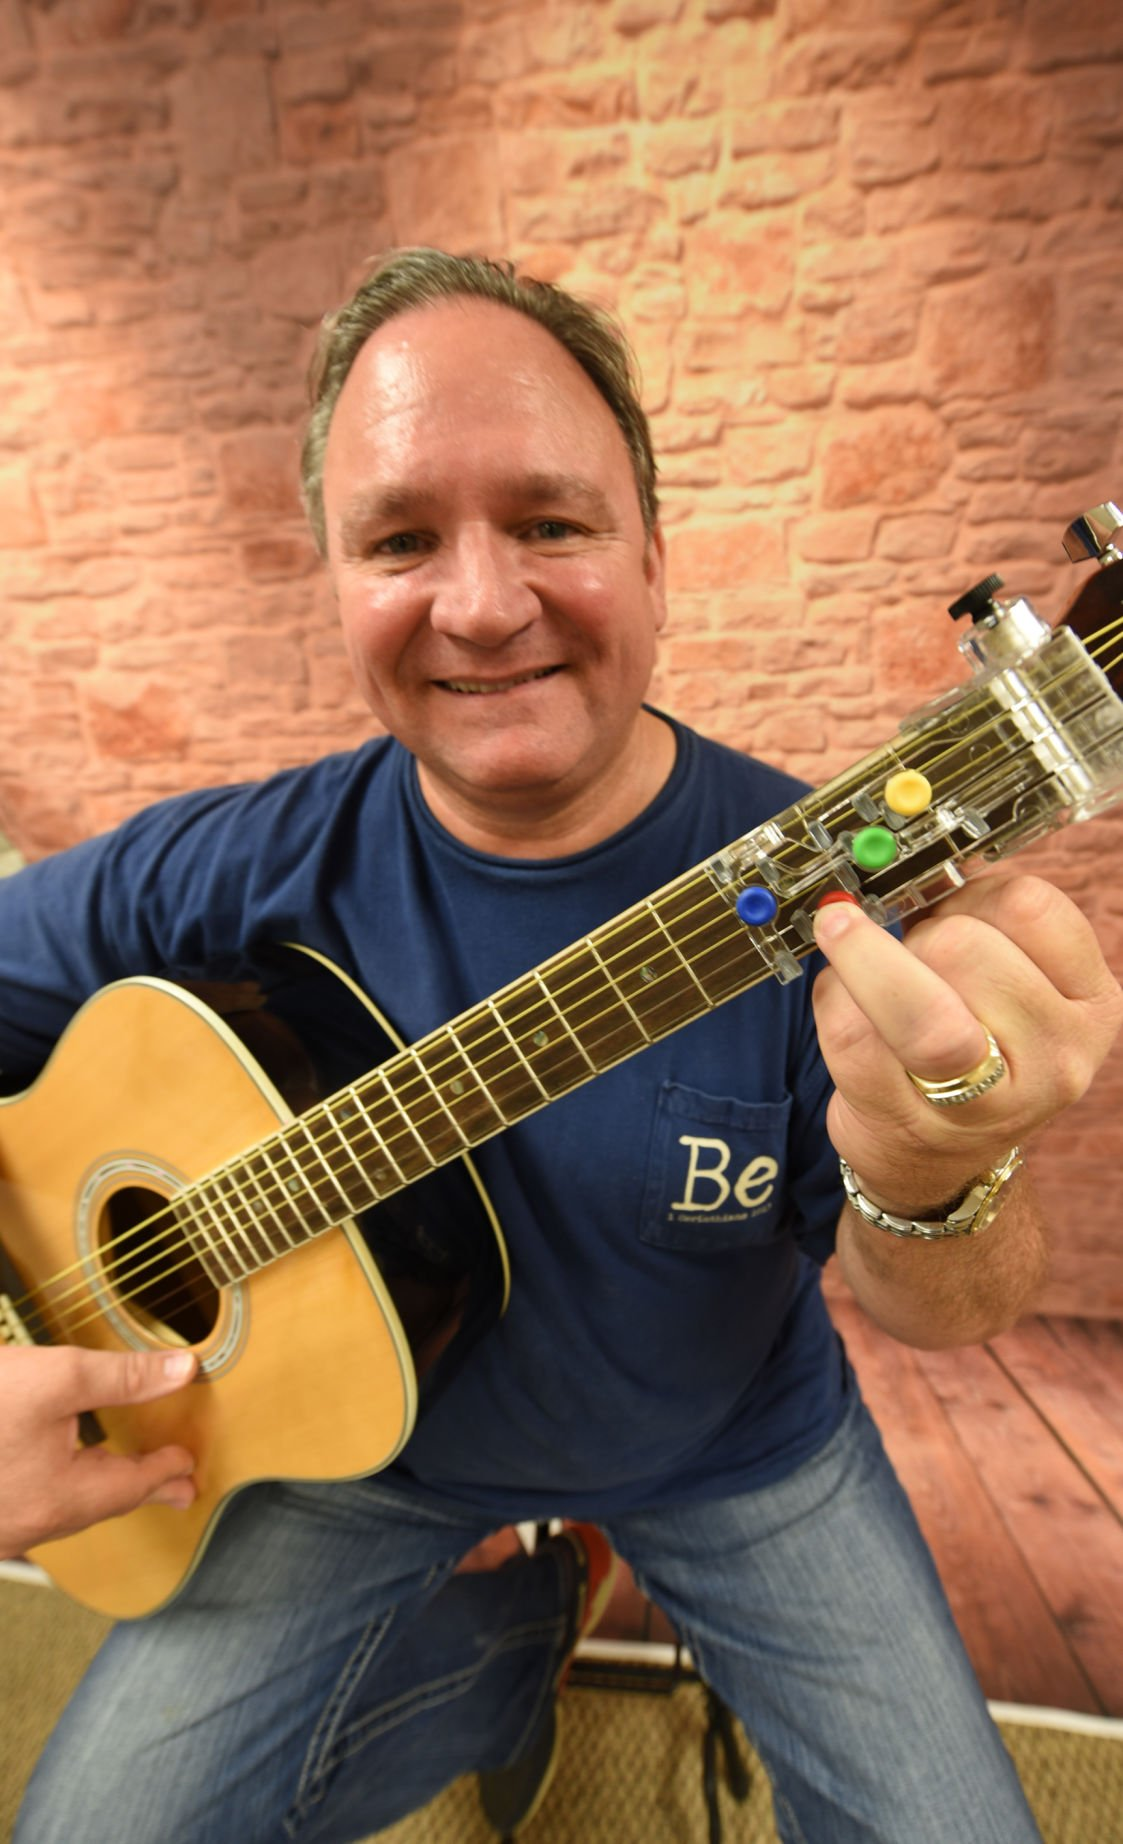 Chord Buddy Inventor Working To Get Guitar Into School Music